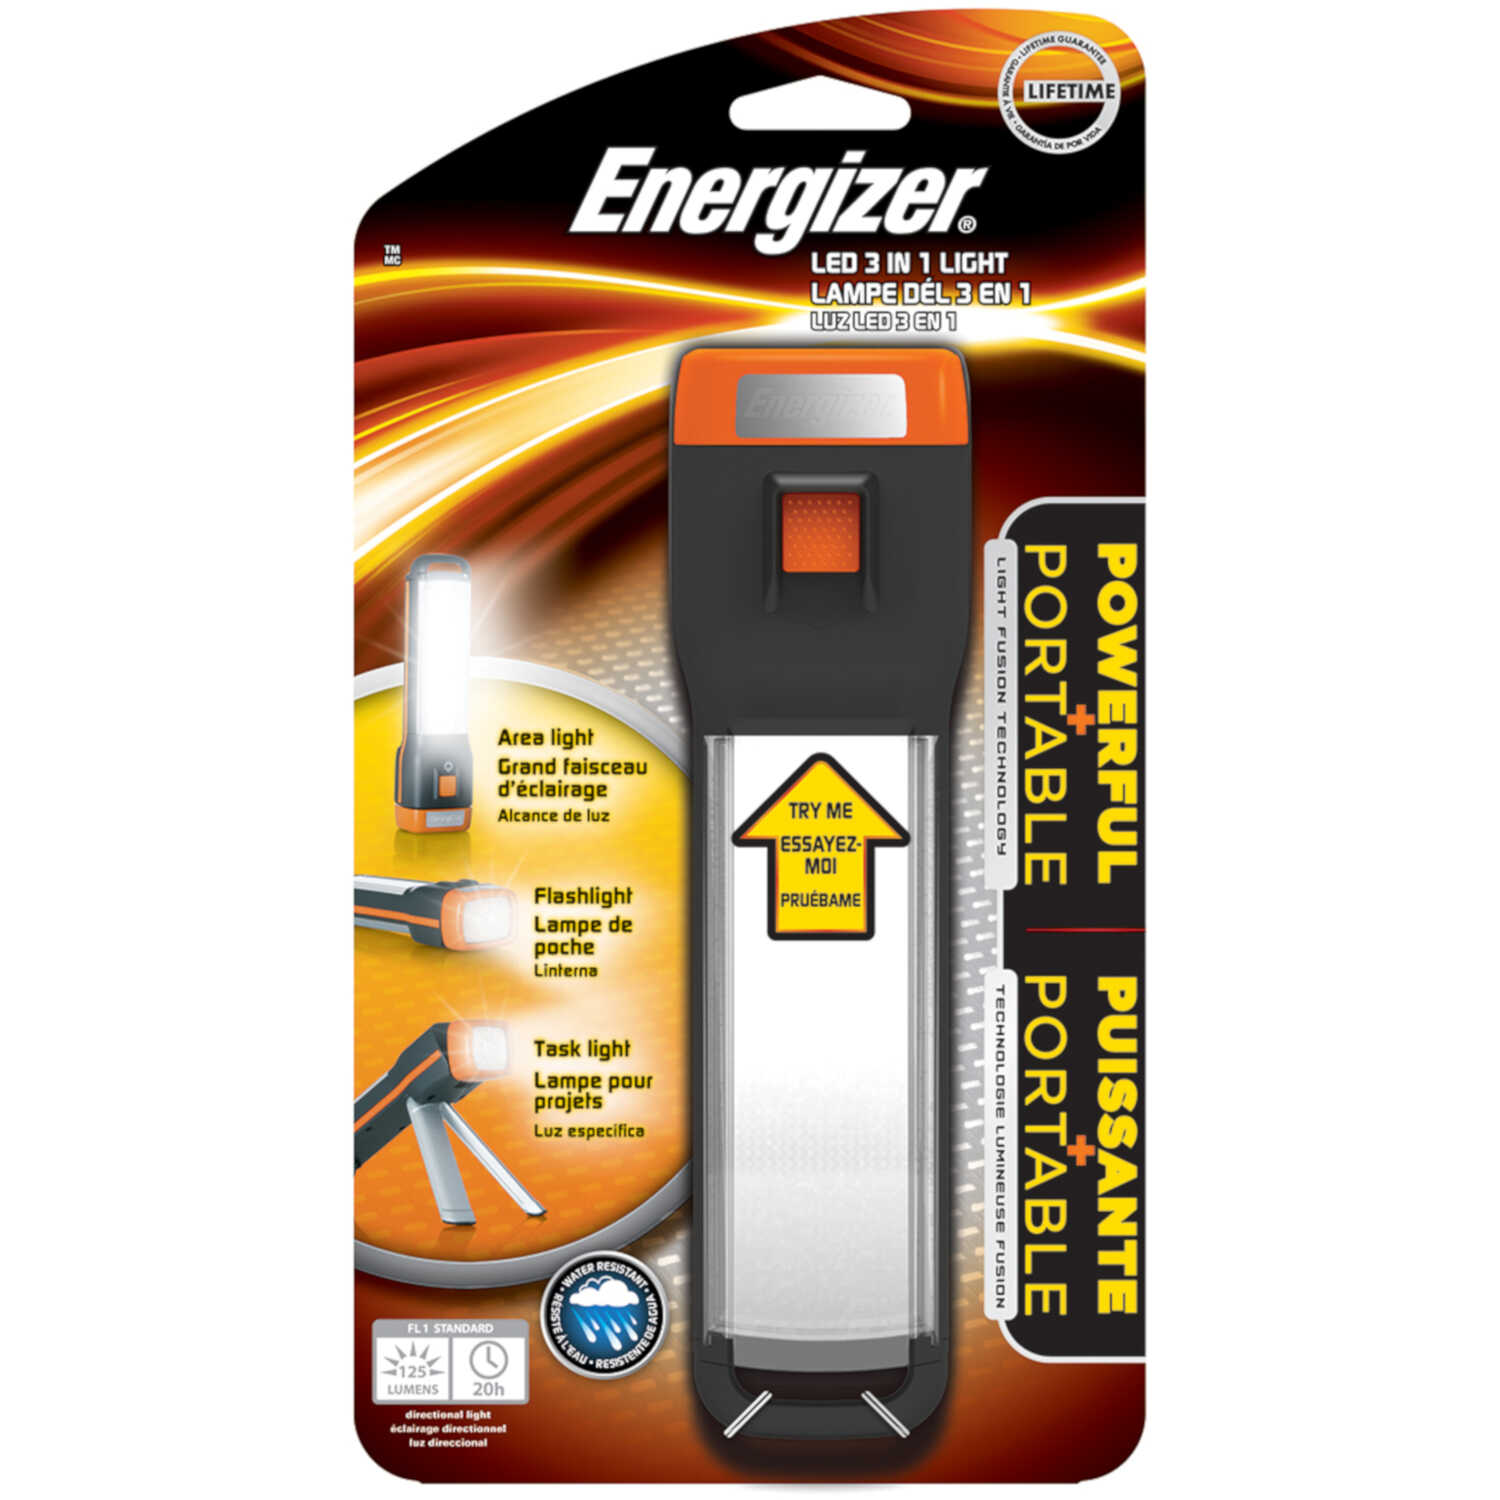 Energizer  3-in-1  150 lumens Black/Gray  LED  Flashlight  AA